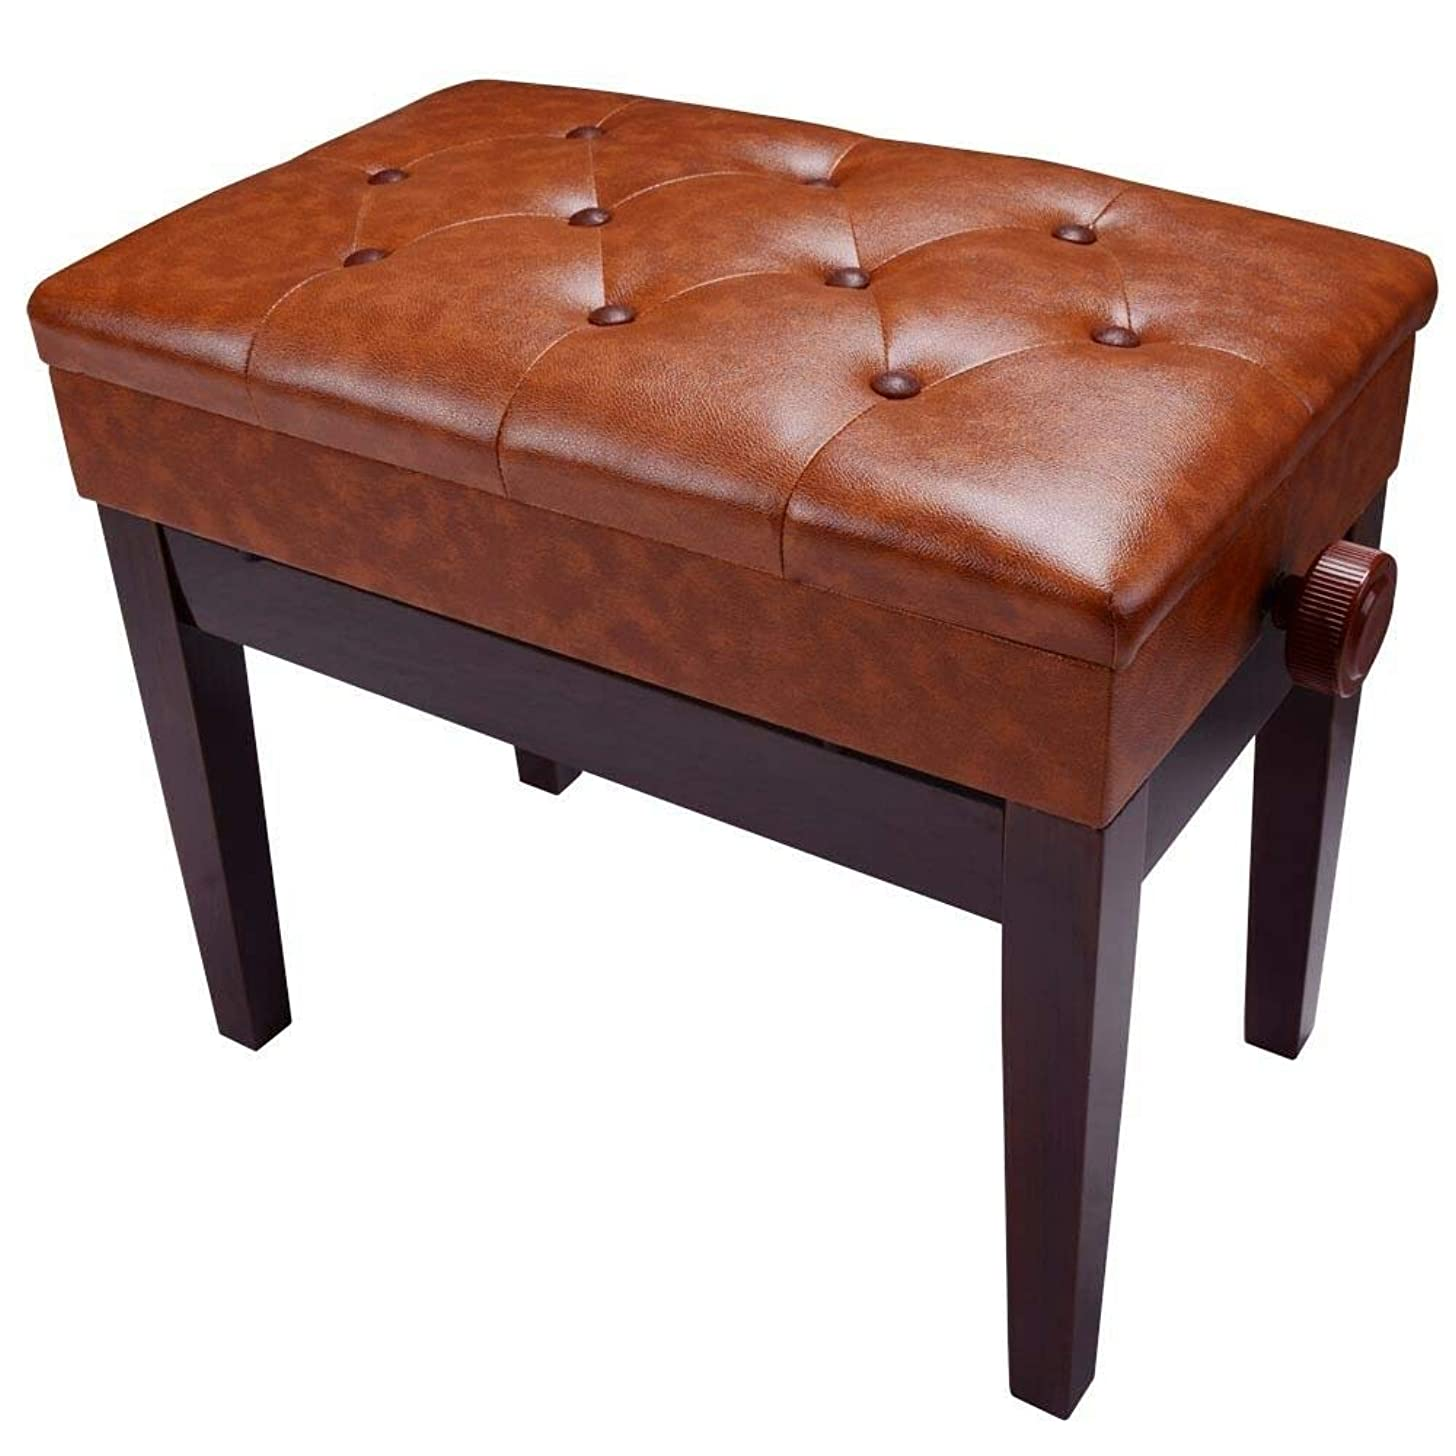 Piano stool/piano seat/PU leather storage height adjustable thick keyboard brown